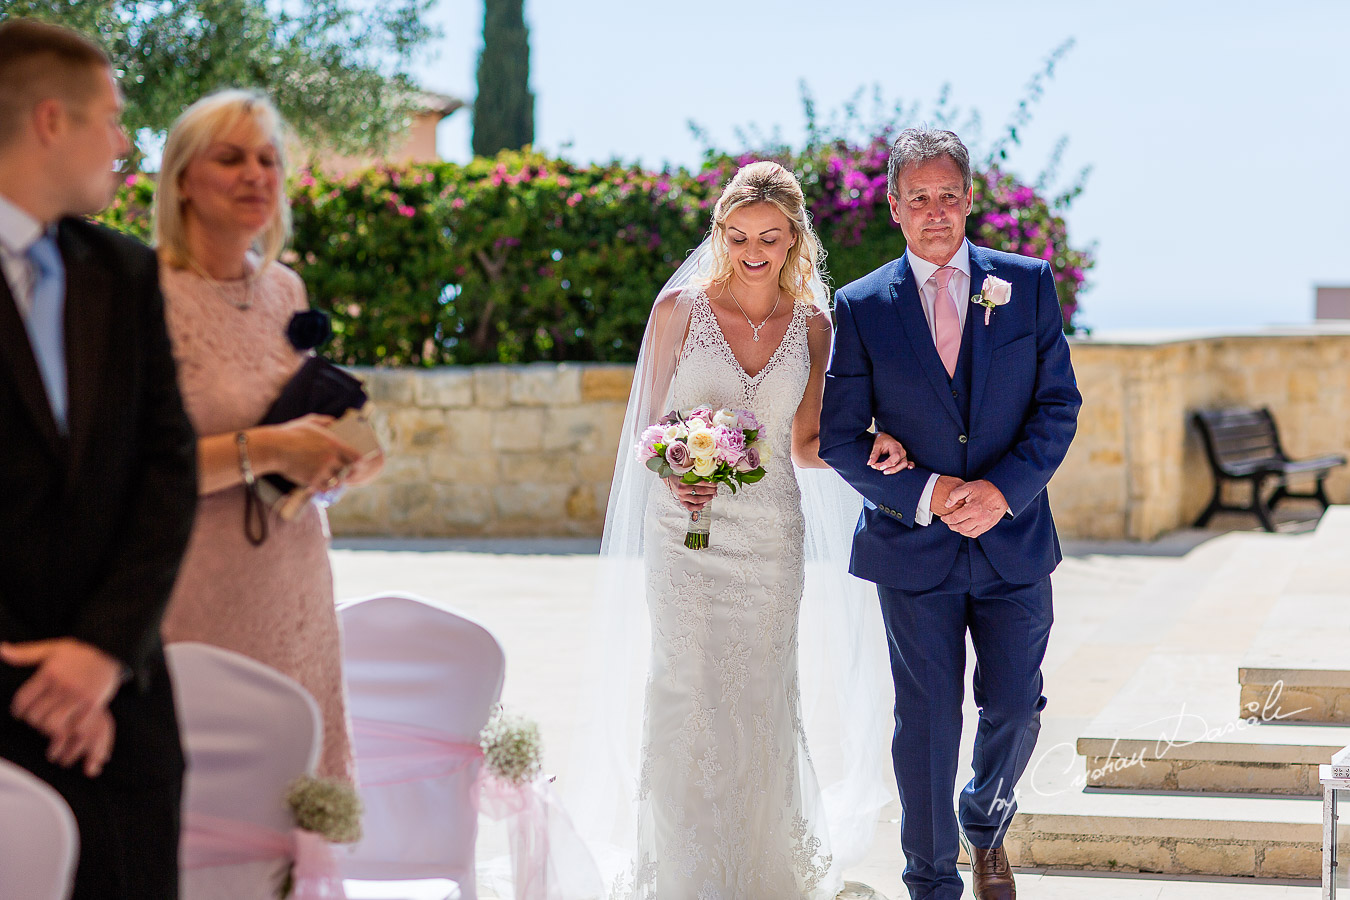 The moment when the bride arrives at the wedding ceremony at Aphrodite Hills Resort in Cyprus, captured by photographer Cristian Dascalu.